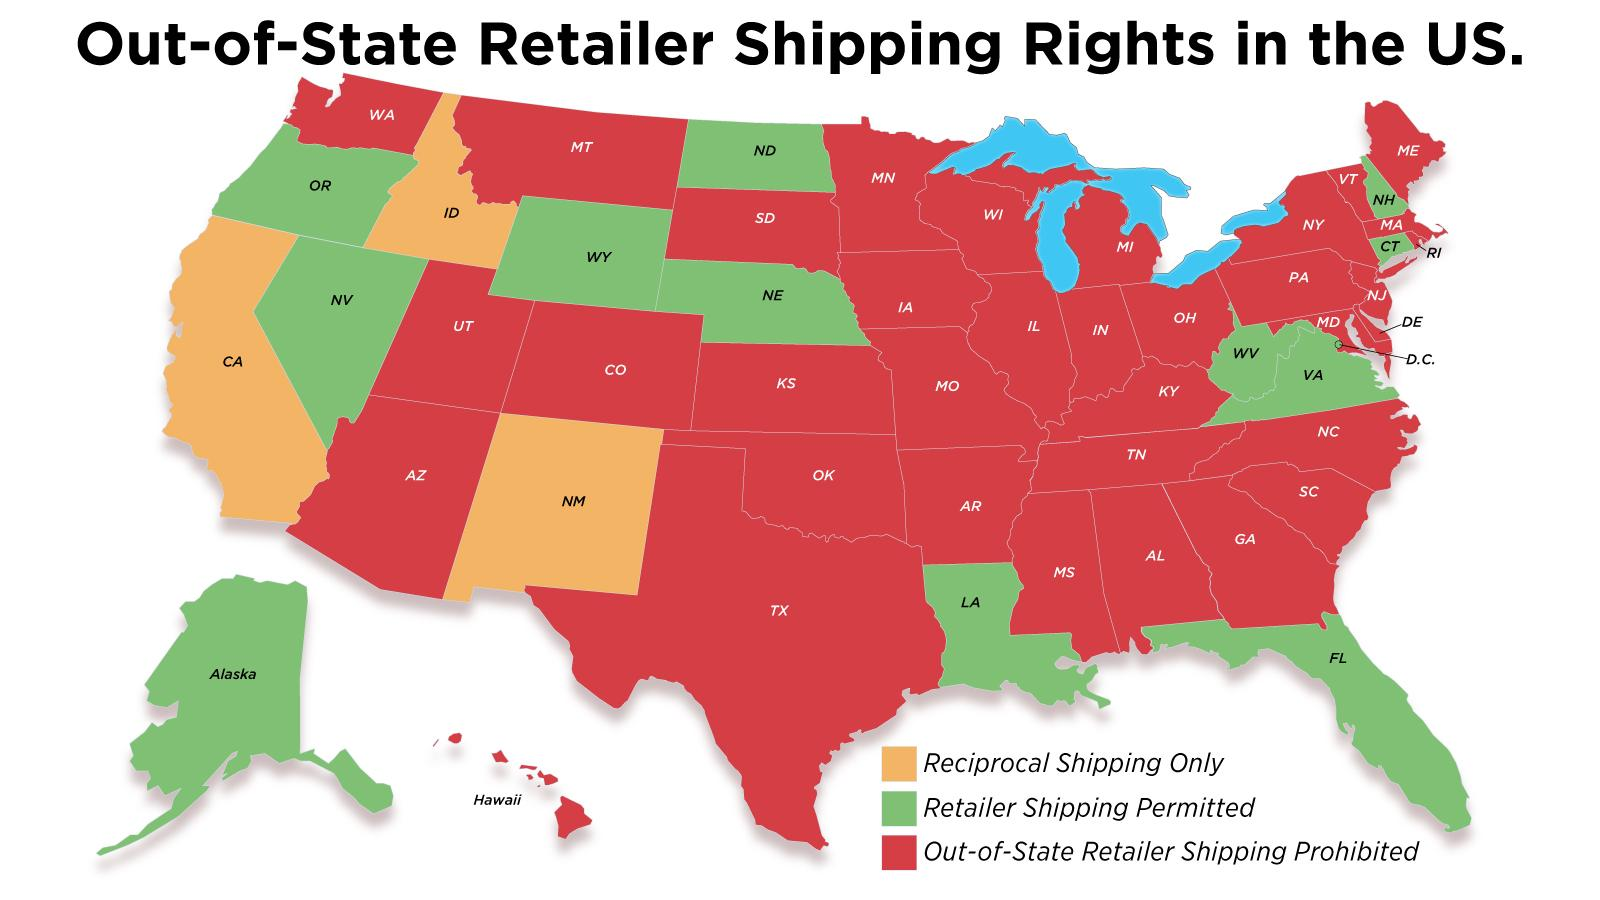 A map of the U.S. with states in red, yellow or green depending on their retailer shipping laws, which are outlined below.